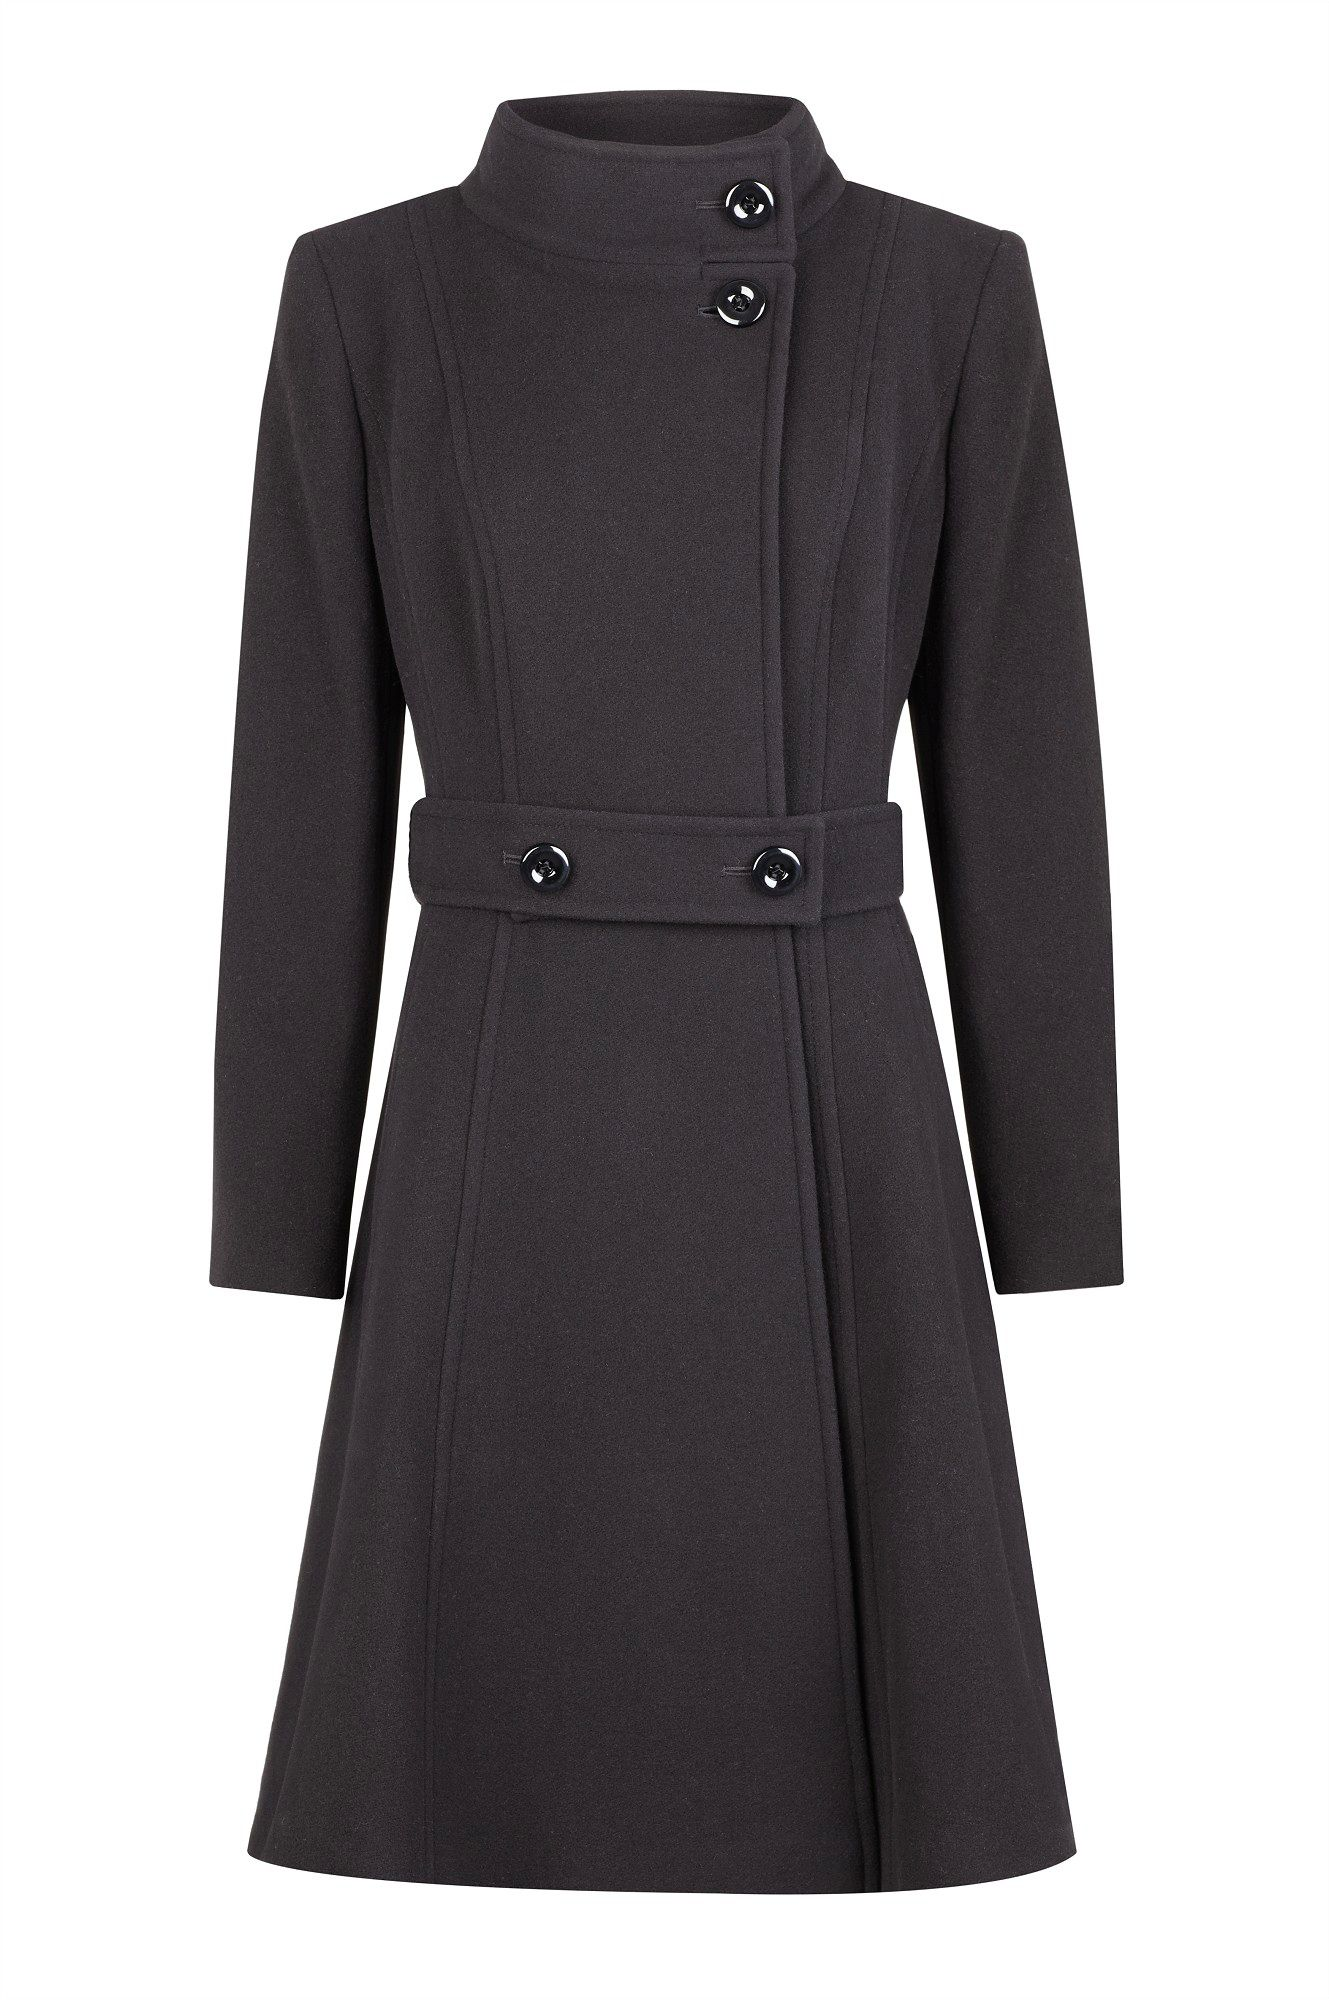 Black full skirt wool coat